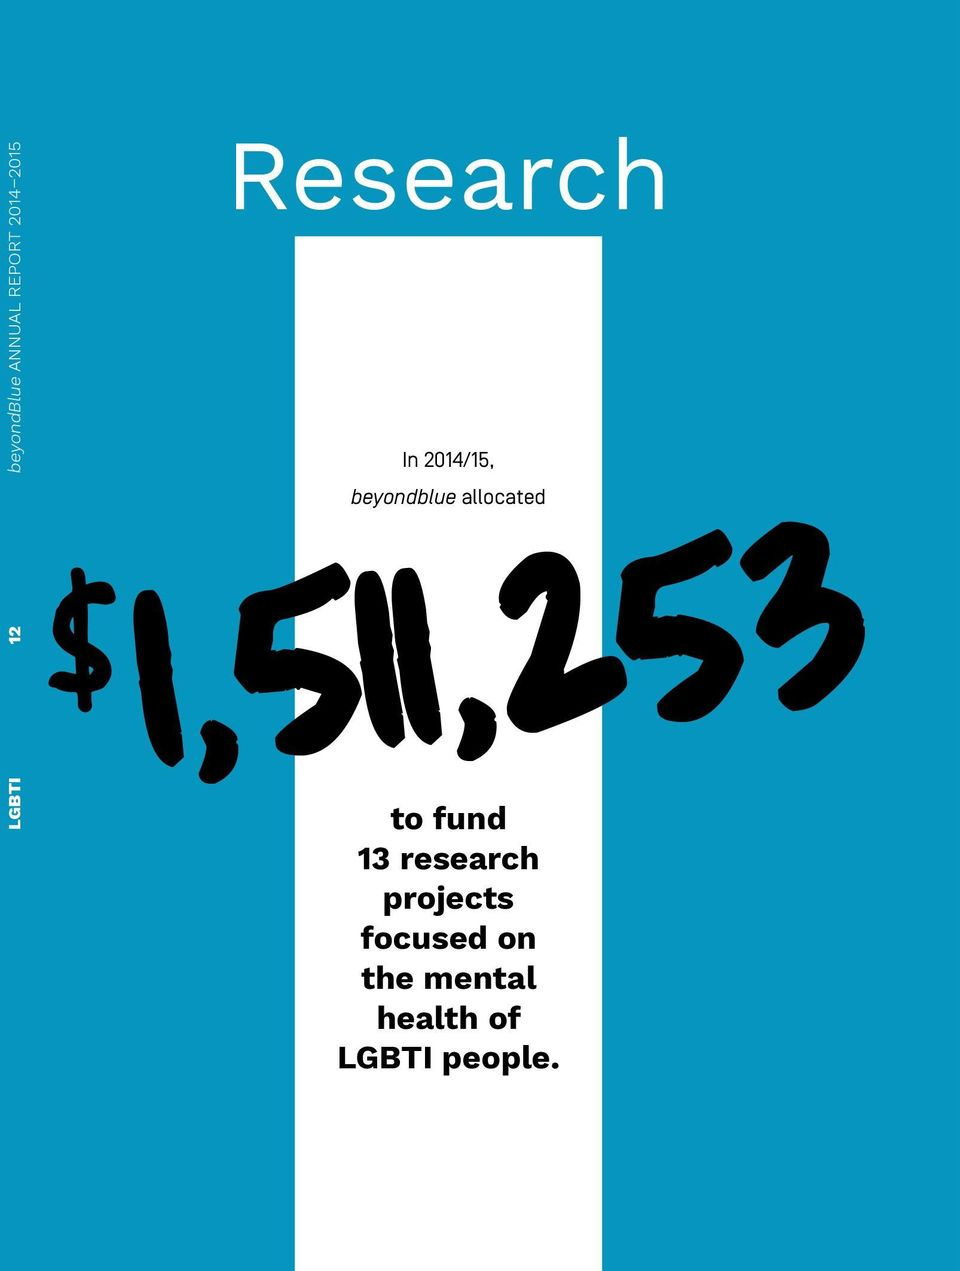 allocated $ 1,511,253 to fund 13 research